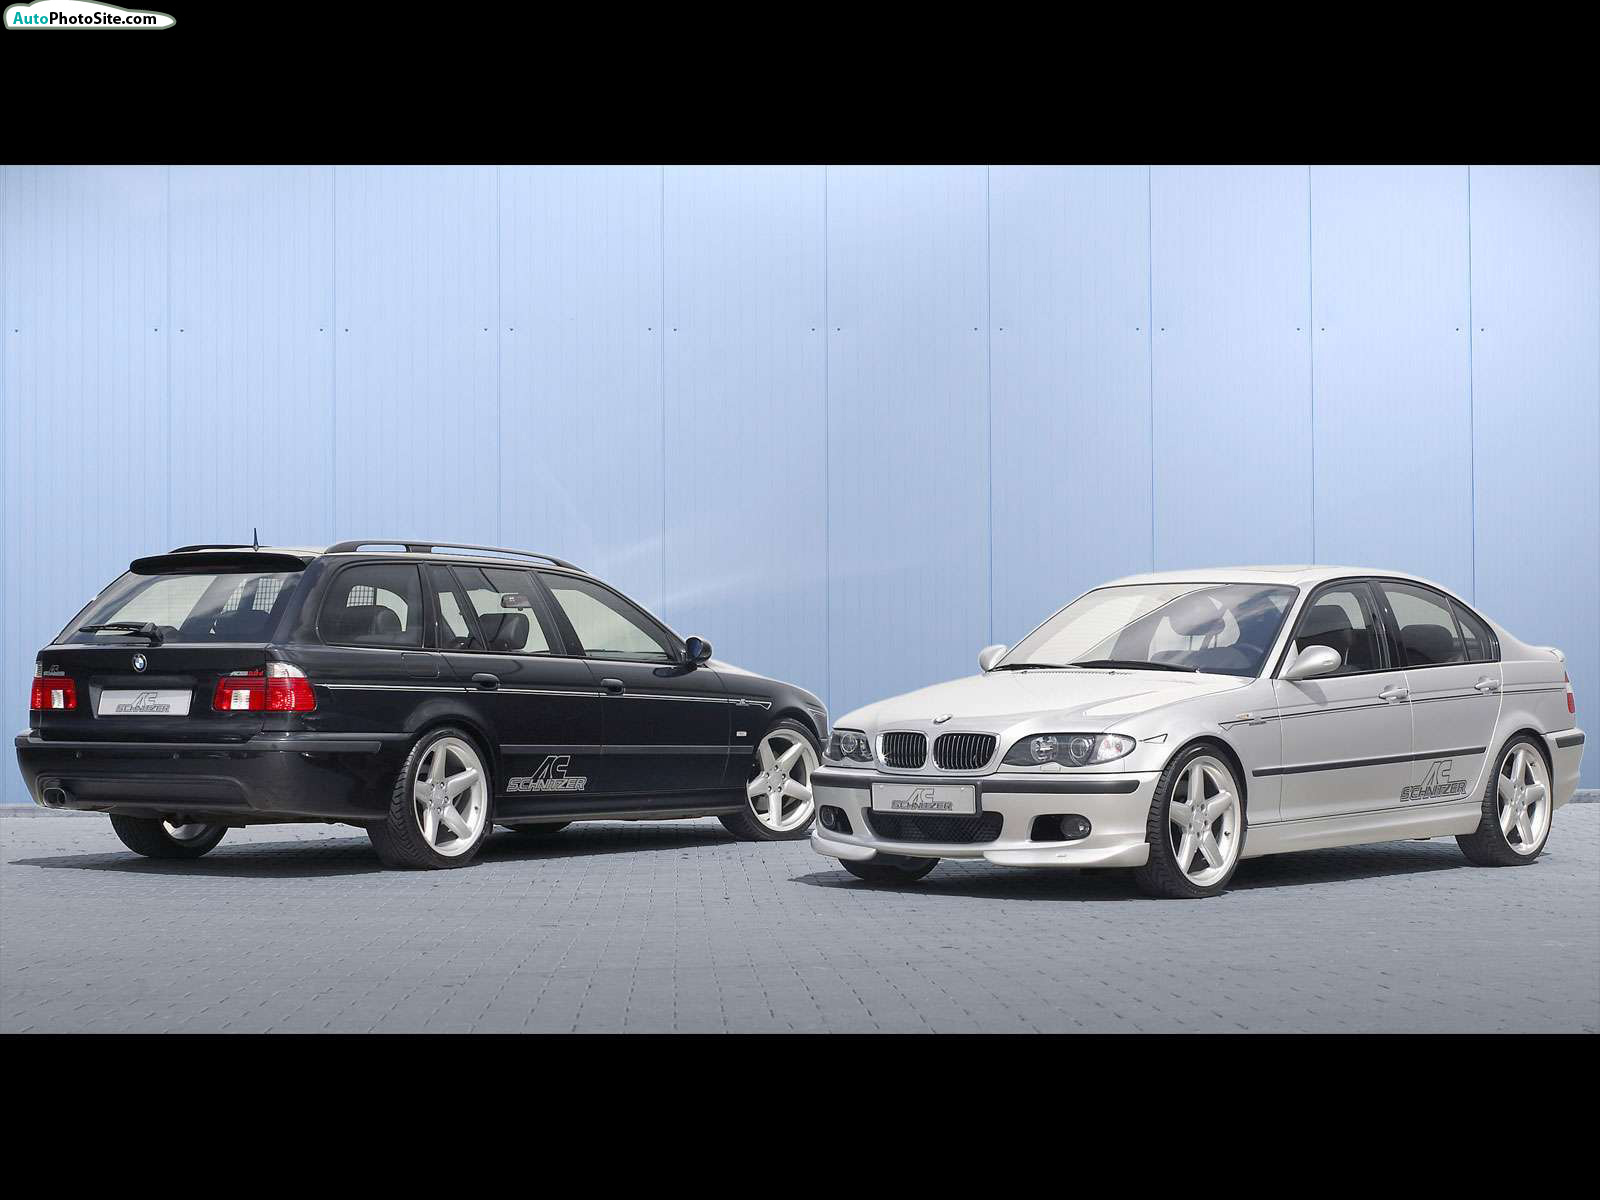 2001 bmw 5er touring e39 pictures information and specs auto. Black Bedroom Furniture Sets. Home Design Ideas